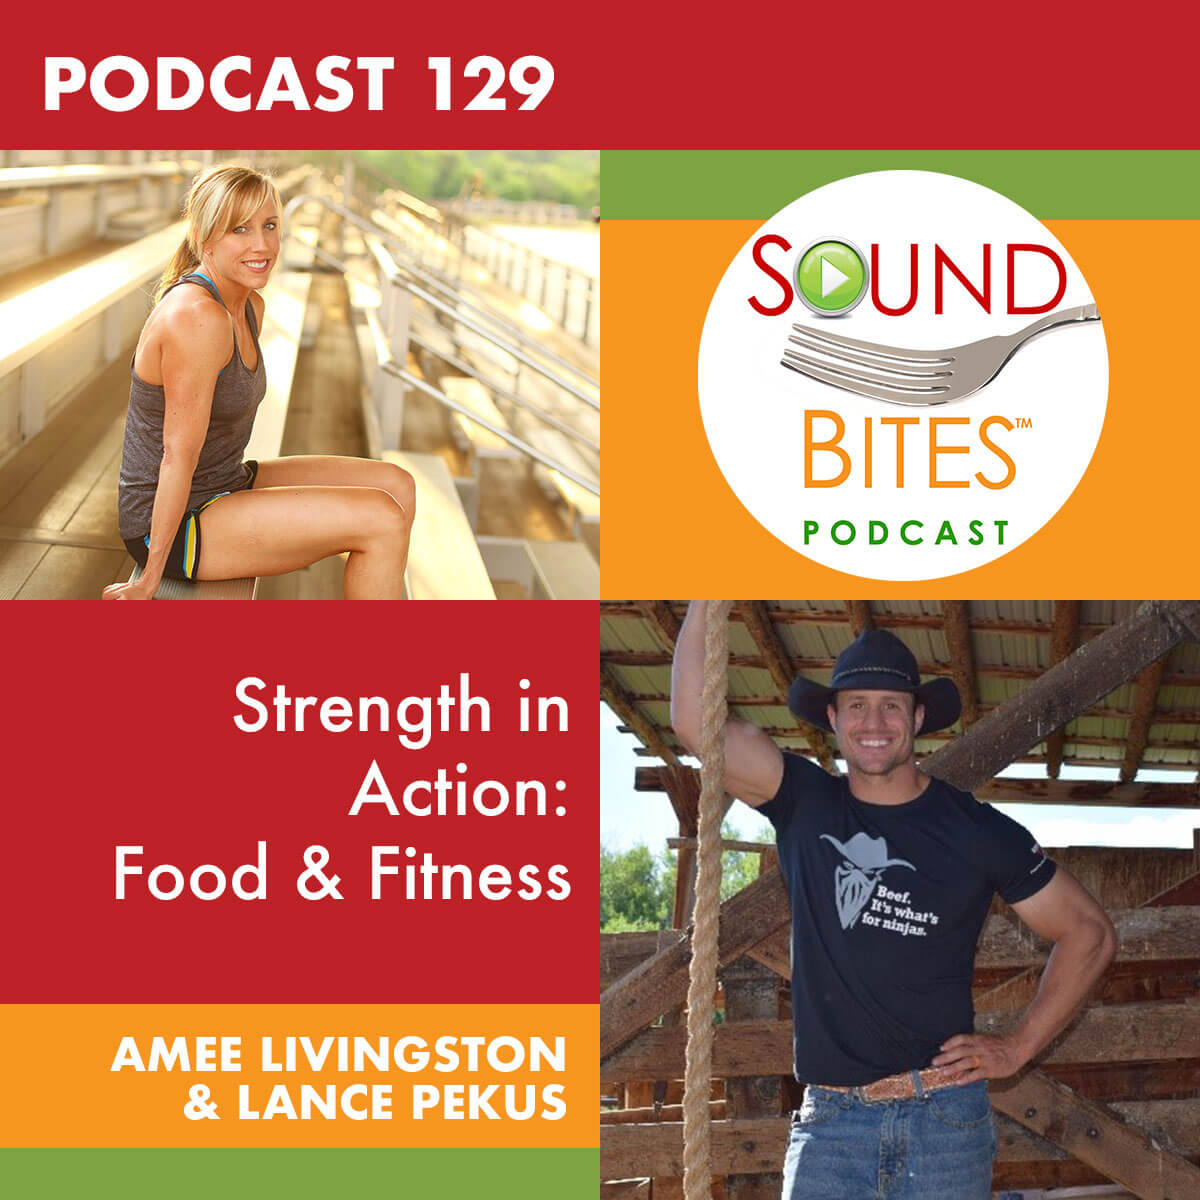 Episode 129: Amee Livingston and Lance Pekus